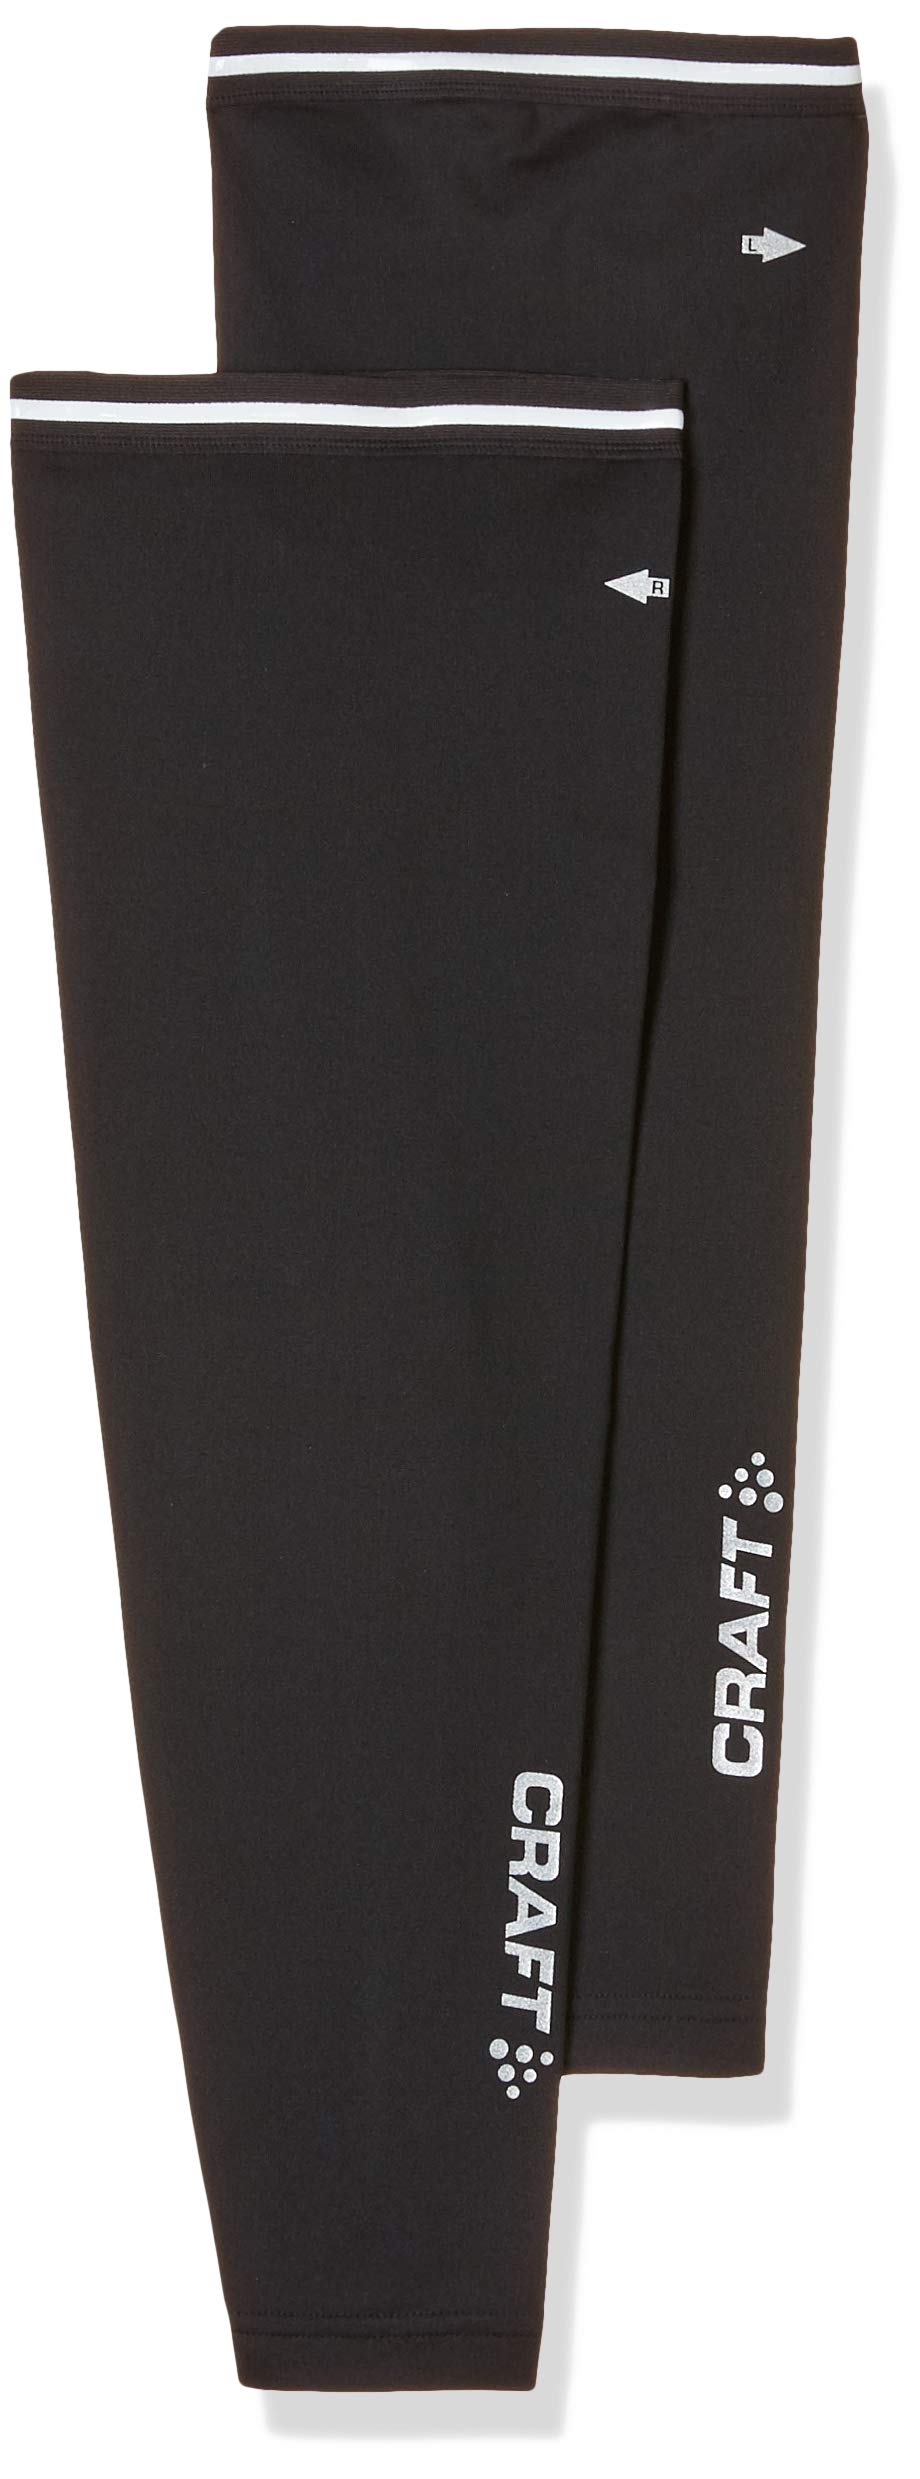 Cycling and Training Craft Knee Warmers for Running